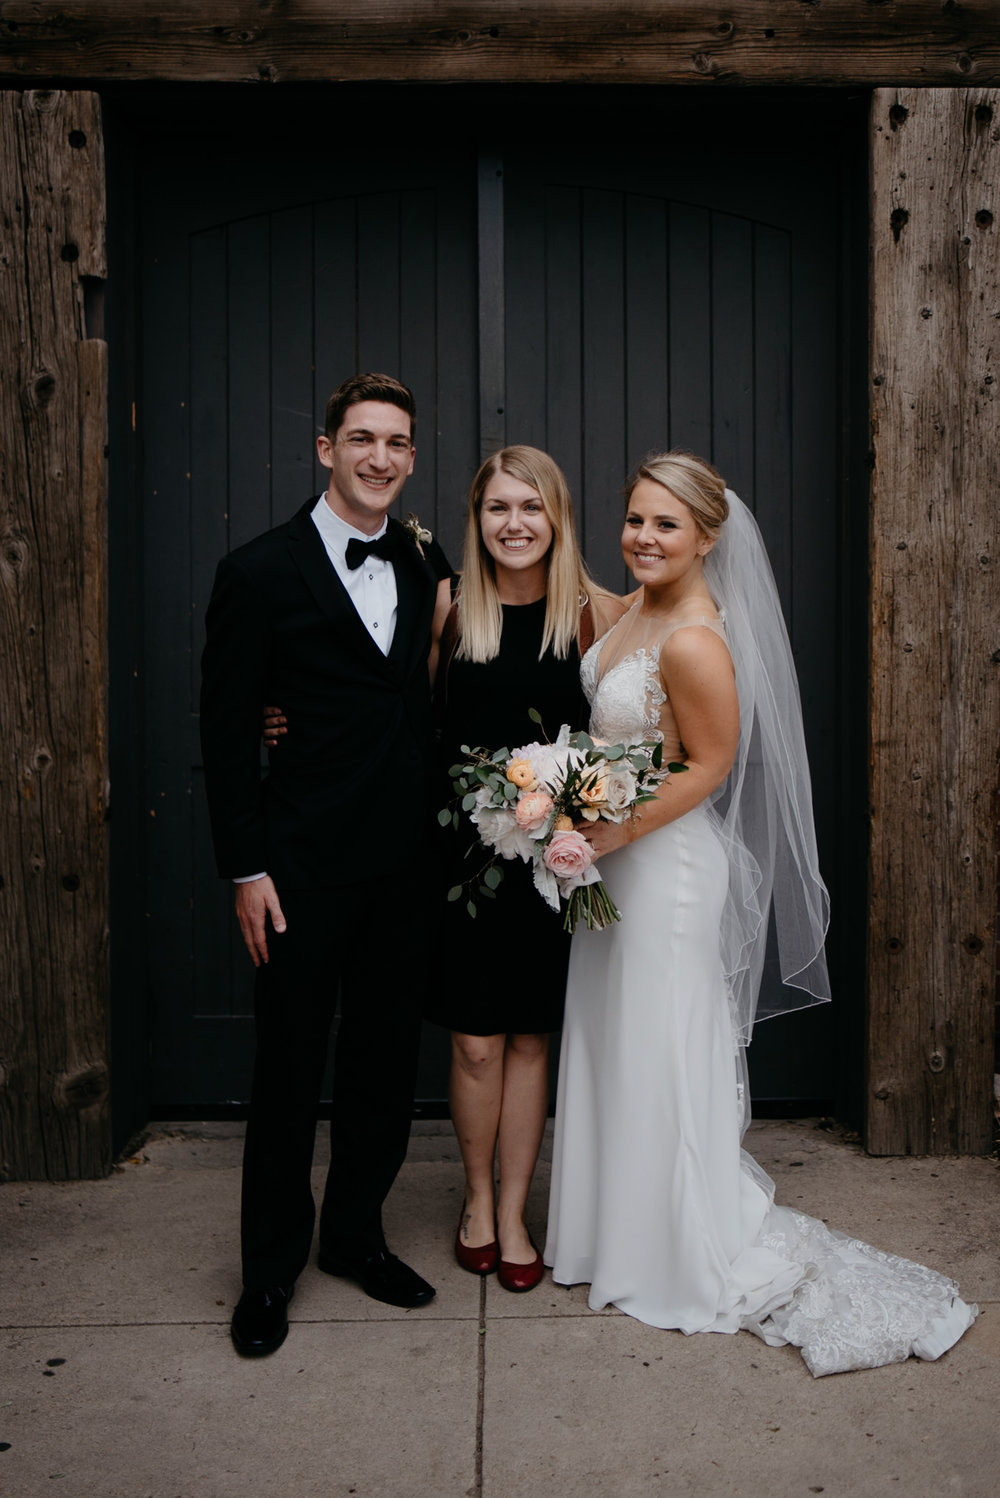 Photographer, Alyssa Reinhold with bride and groom at wedding at Moss in Downtown Denver.